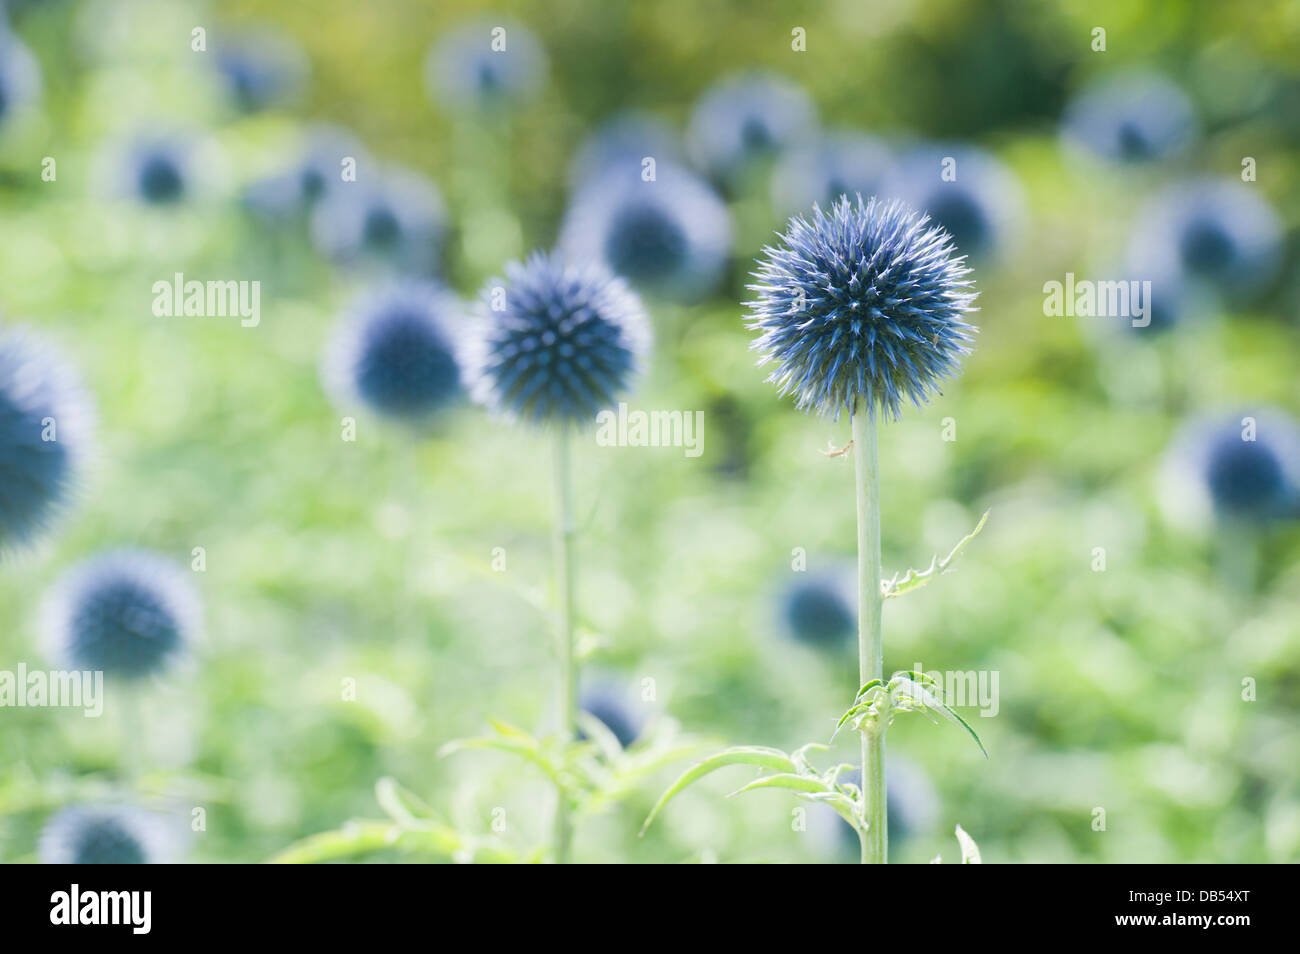 Blue Spiky Flowers Stock Photos Blue Spiky Flowers Stock Images